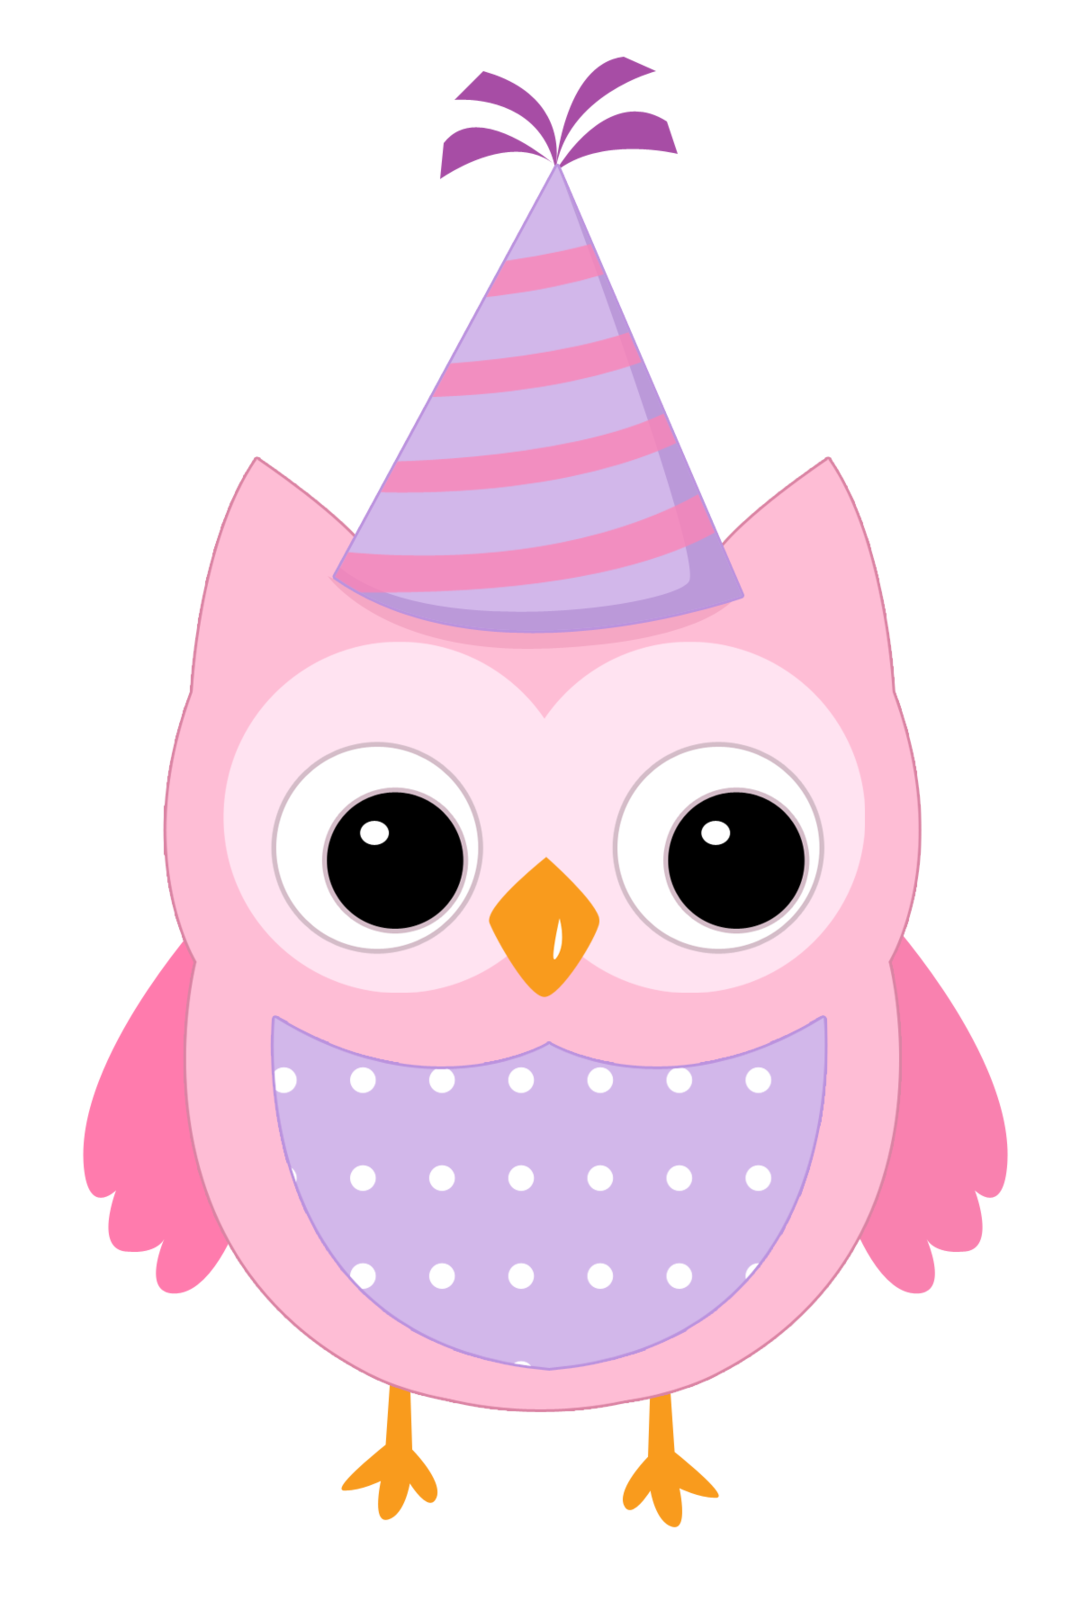 Clipart of owl with apple clip stock CLIPART ANIVERSÁRIO | Art | Pinterest | Owl, Clip art and Owl clip art clip stock